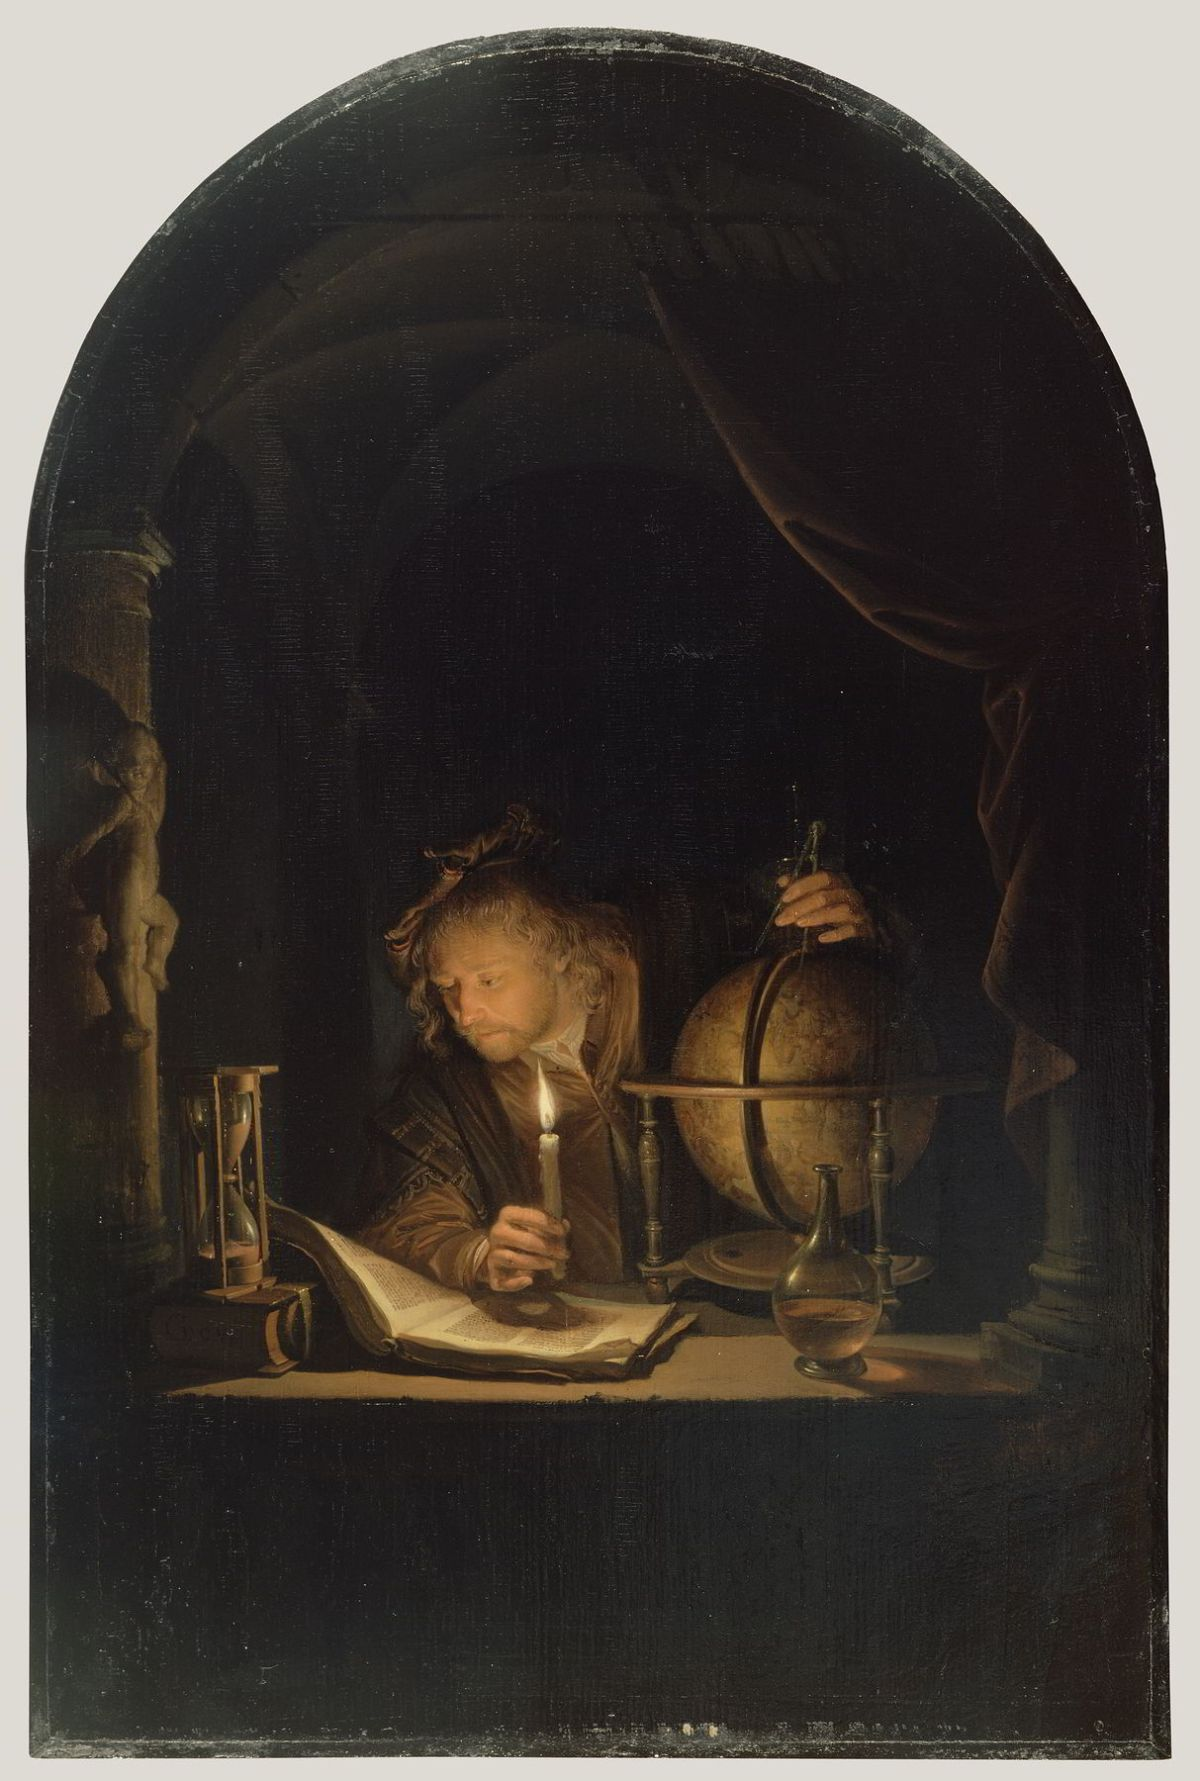 The Astronomer by Candlelight by Gerrit Dou